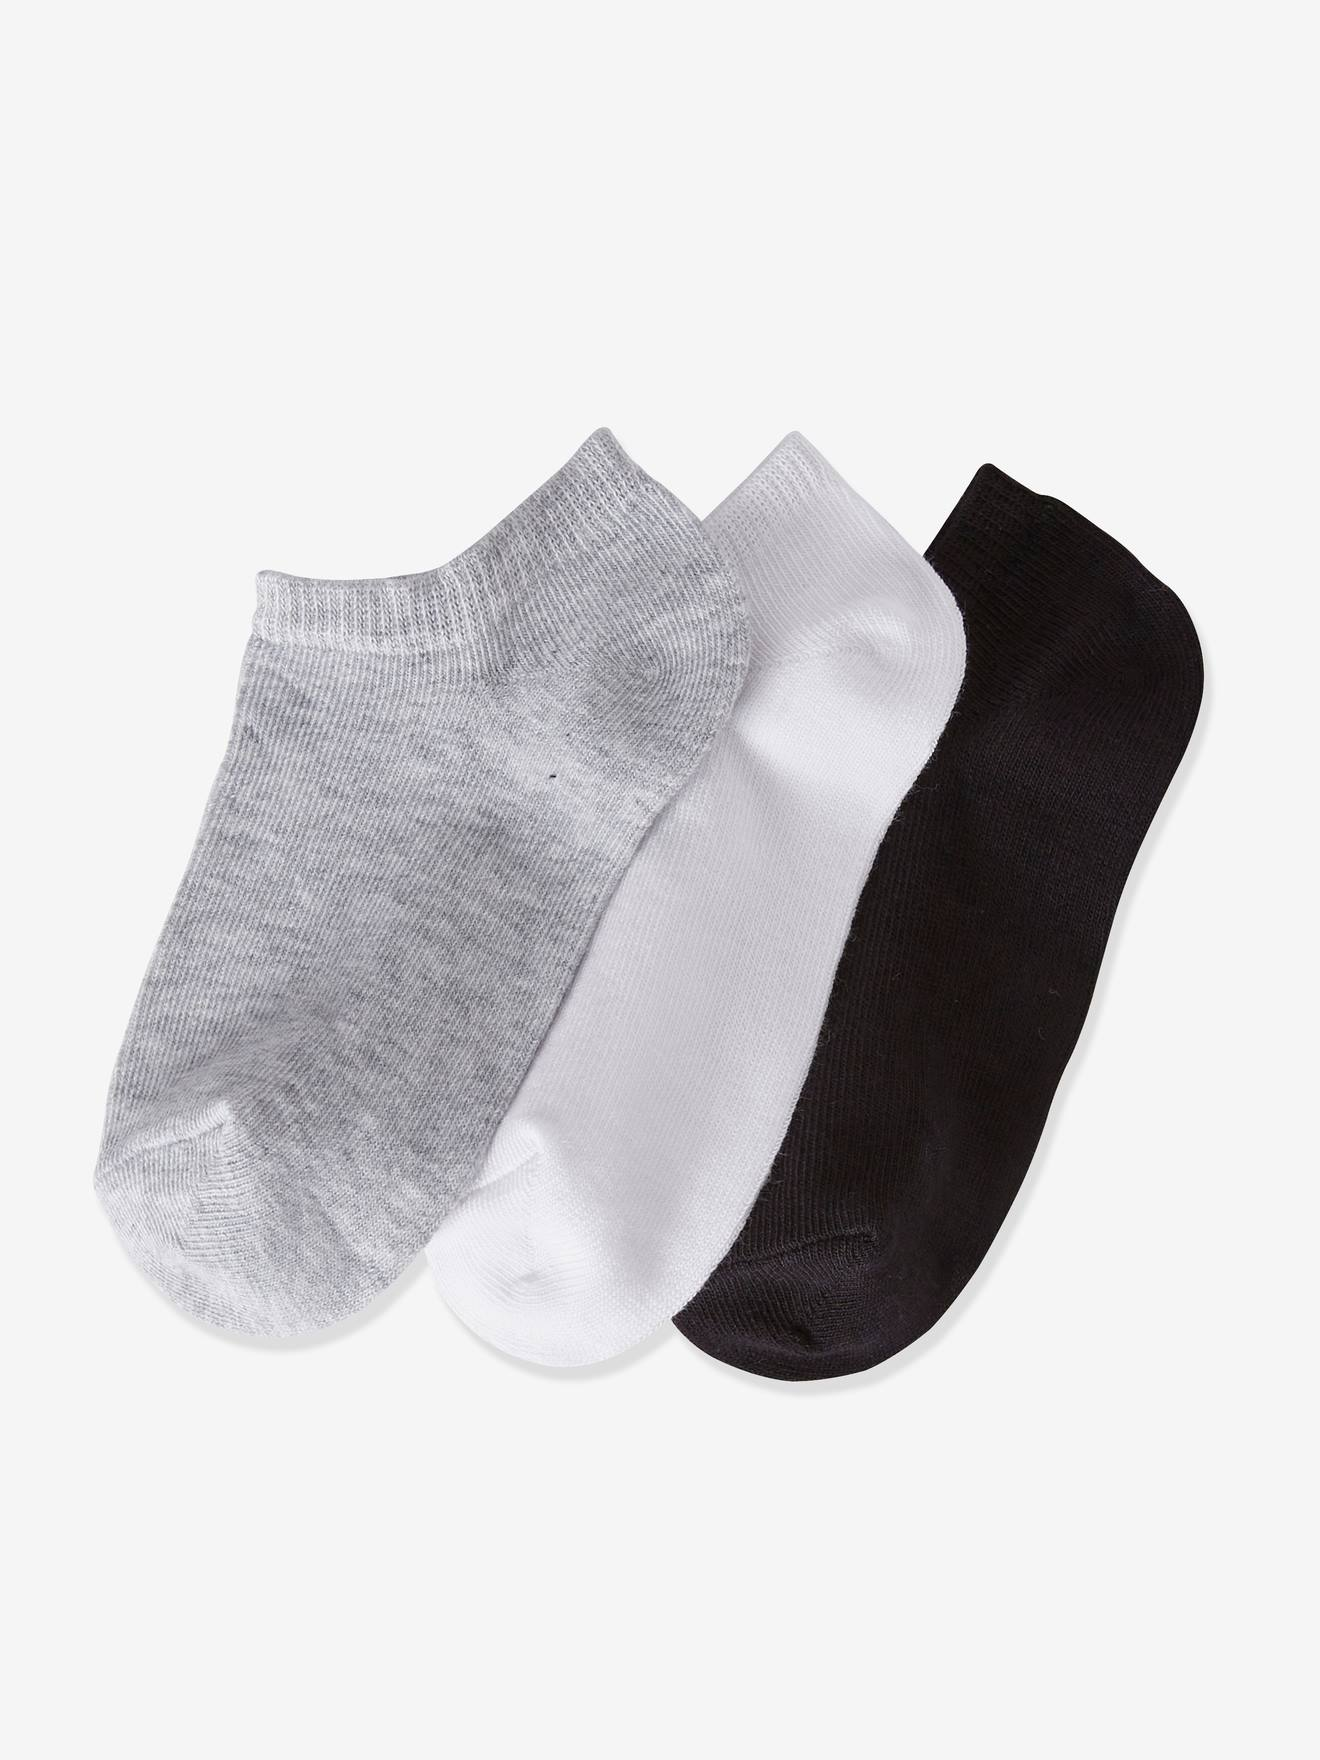 3 PAIRS GIRLS-LADIES BLACK  TURN OVER TOP ANKLE SOCKS